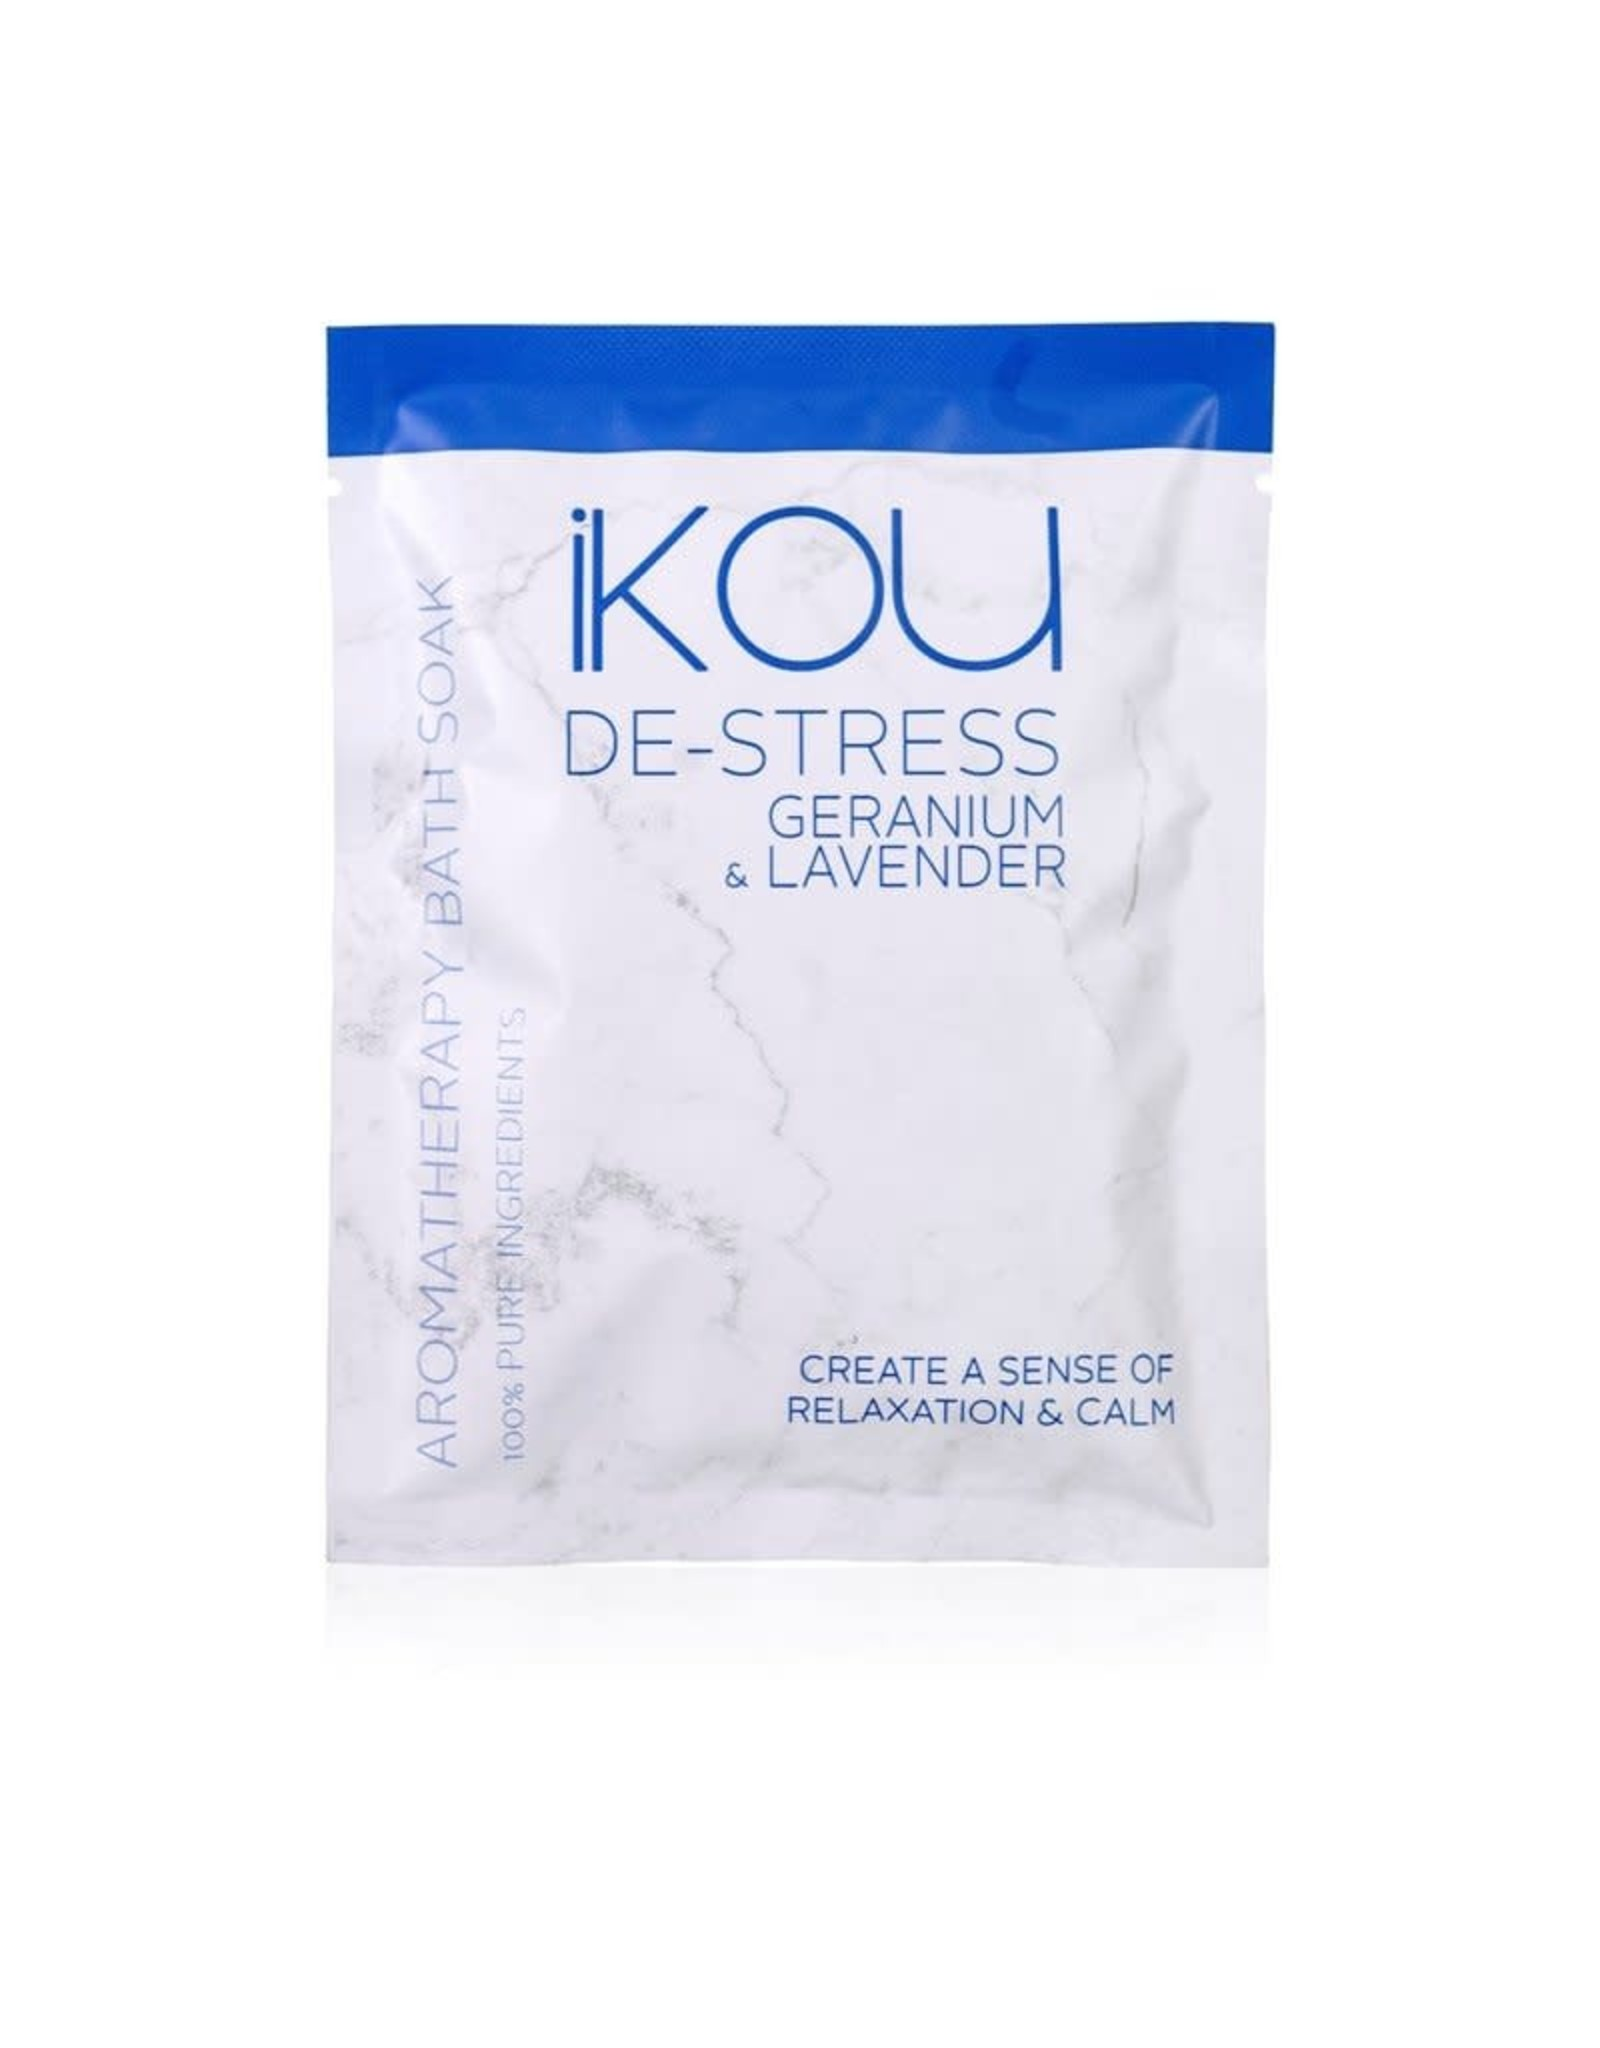 IKOU De-Stress Bath Soak (125g Satchel)